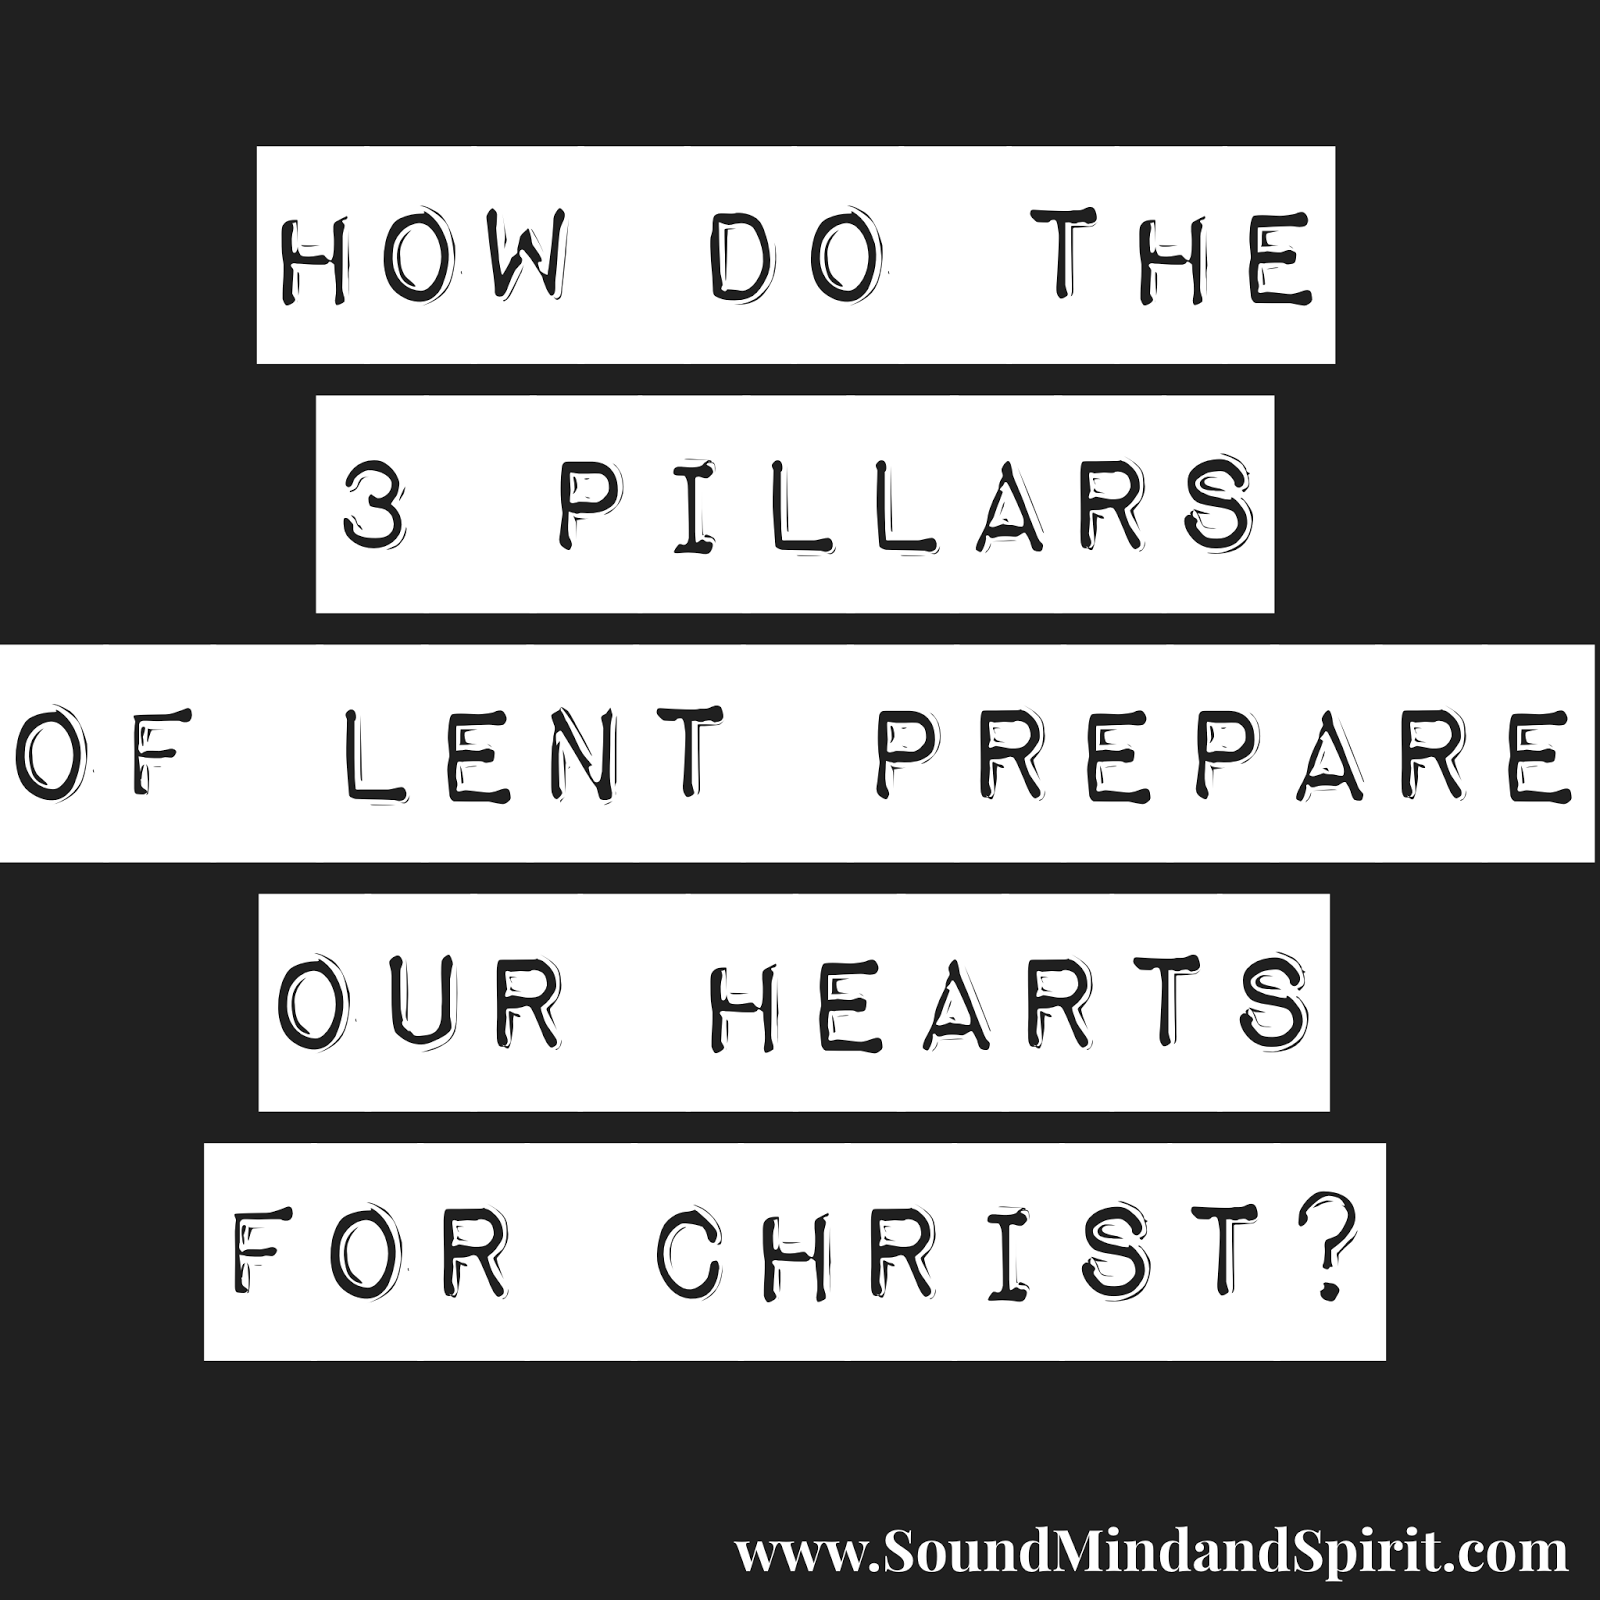 How do the 3 pillars of Lent prepare our hearts for Christ?